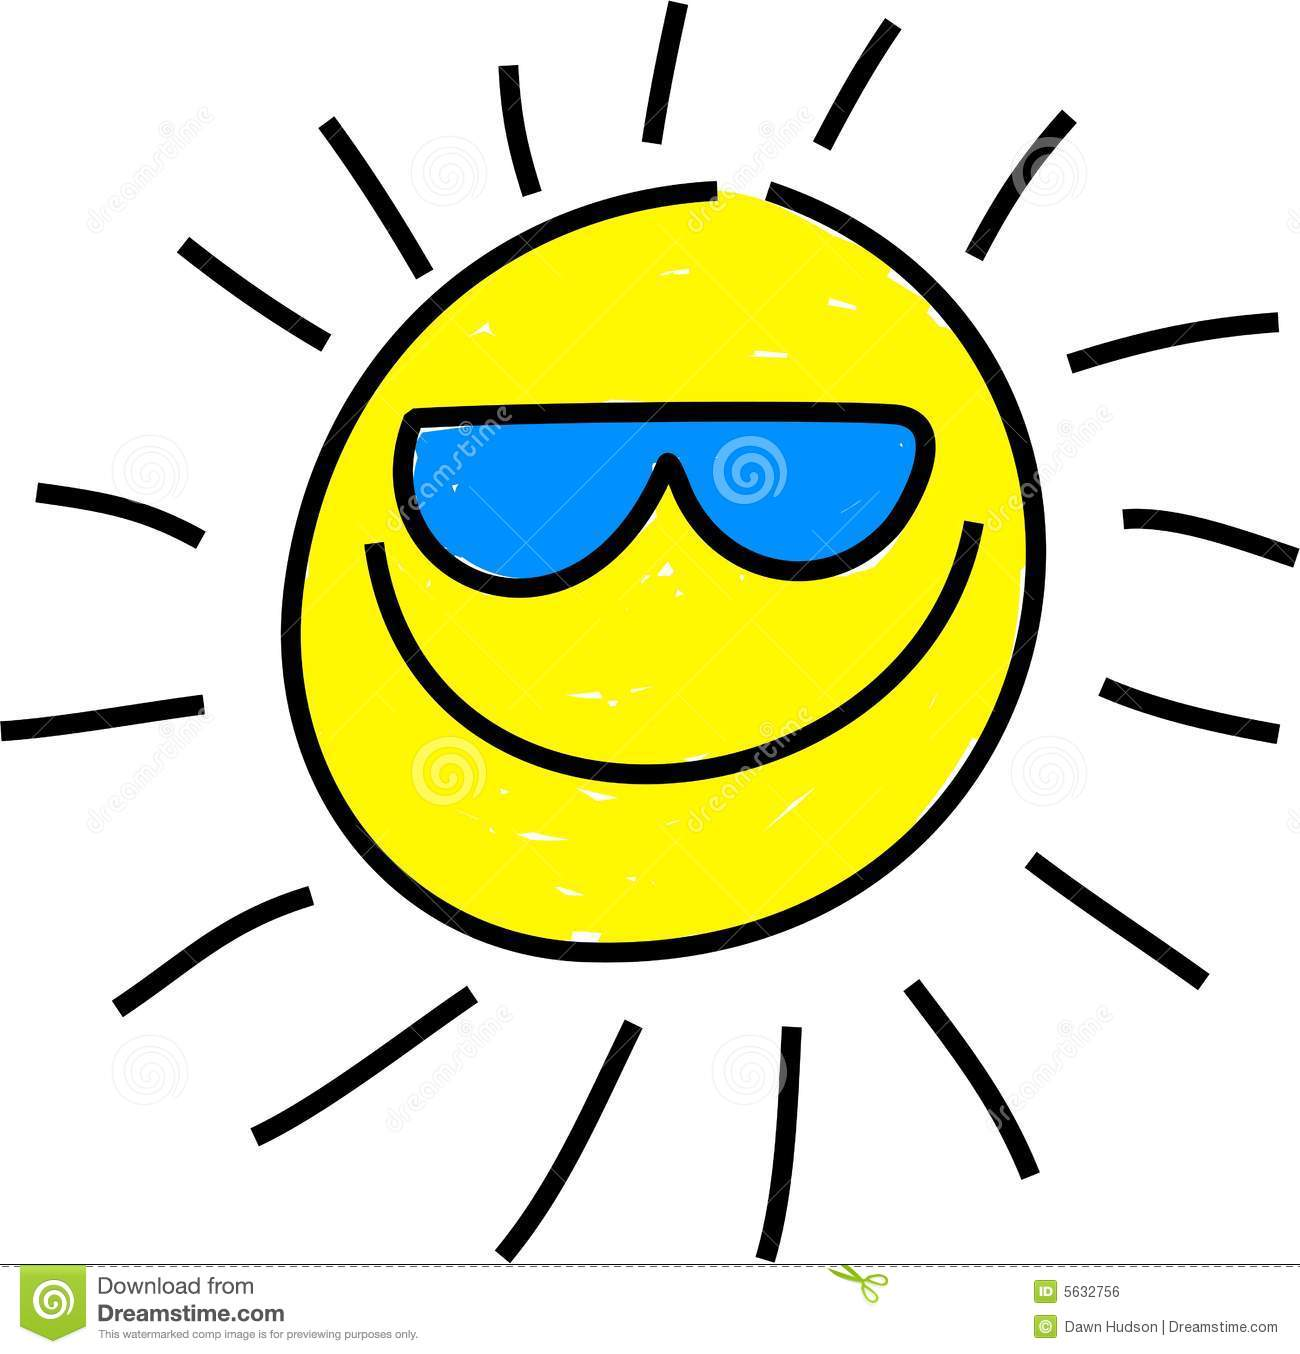 Whimsical drawing of a isolated sun wearing sunglasses.